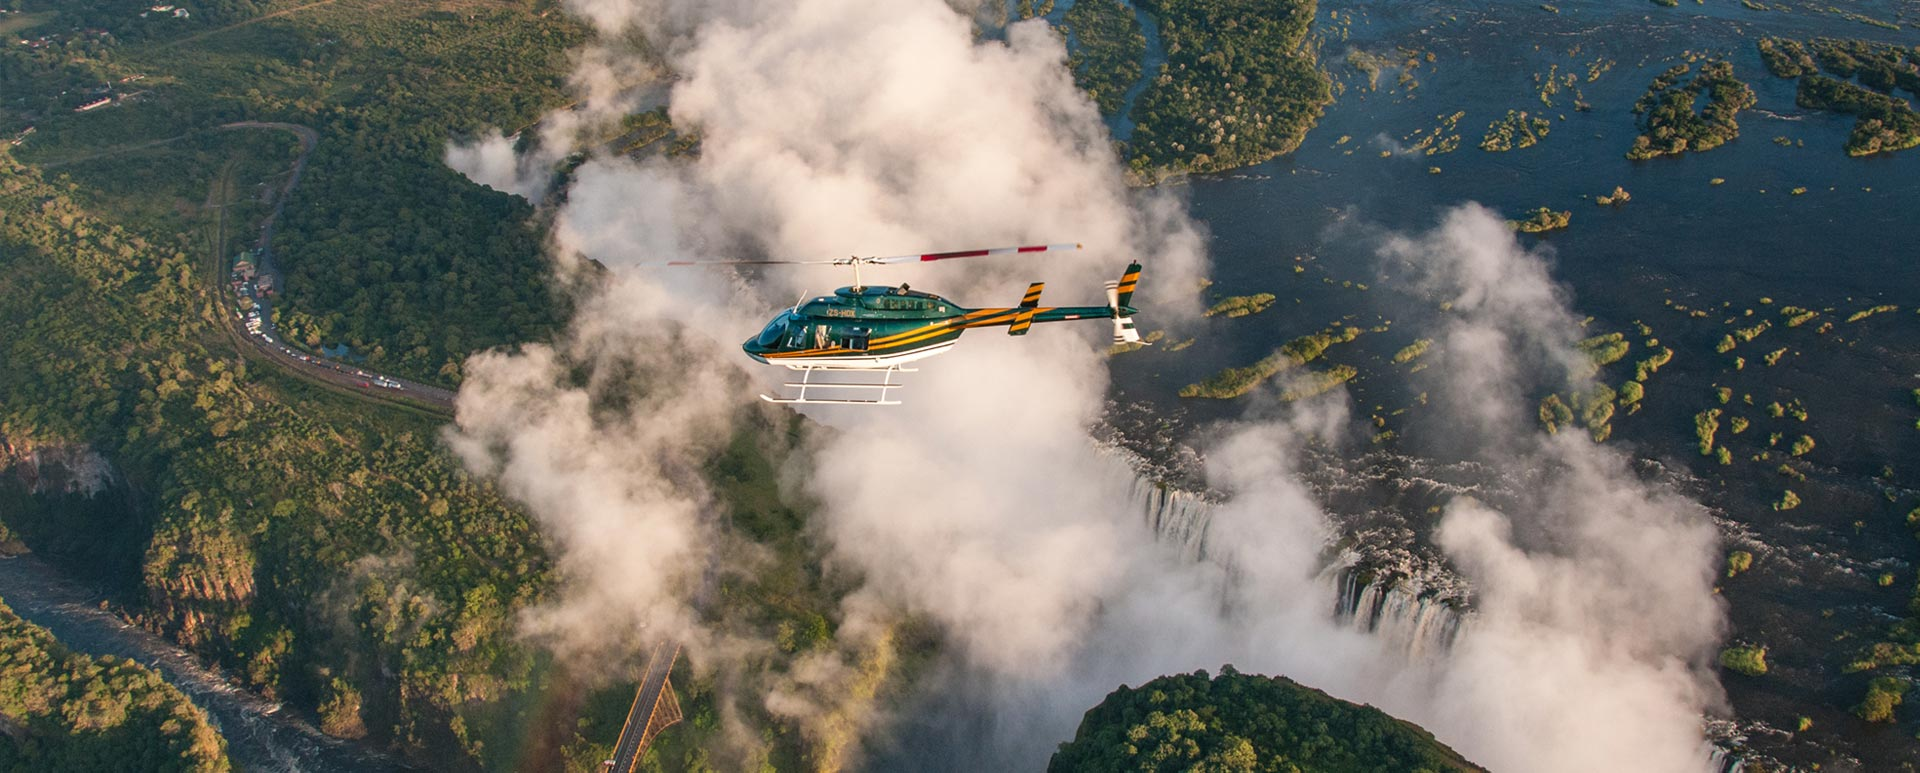 Victoria Falls Helicopter Flight